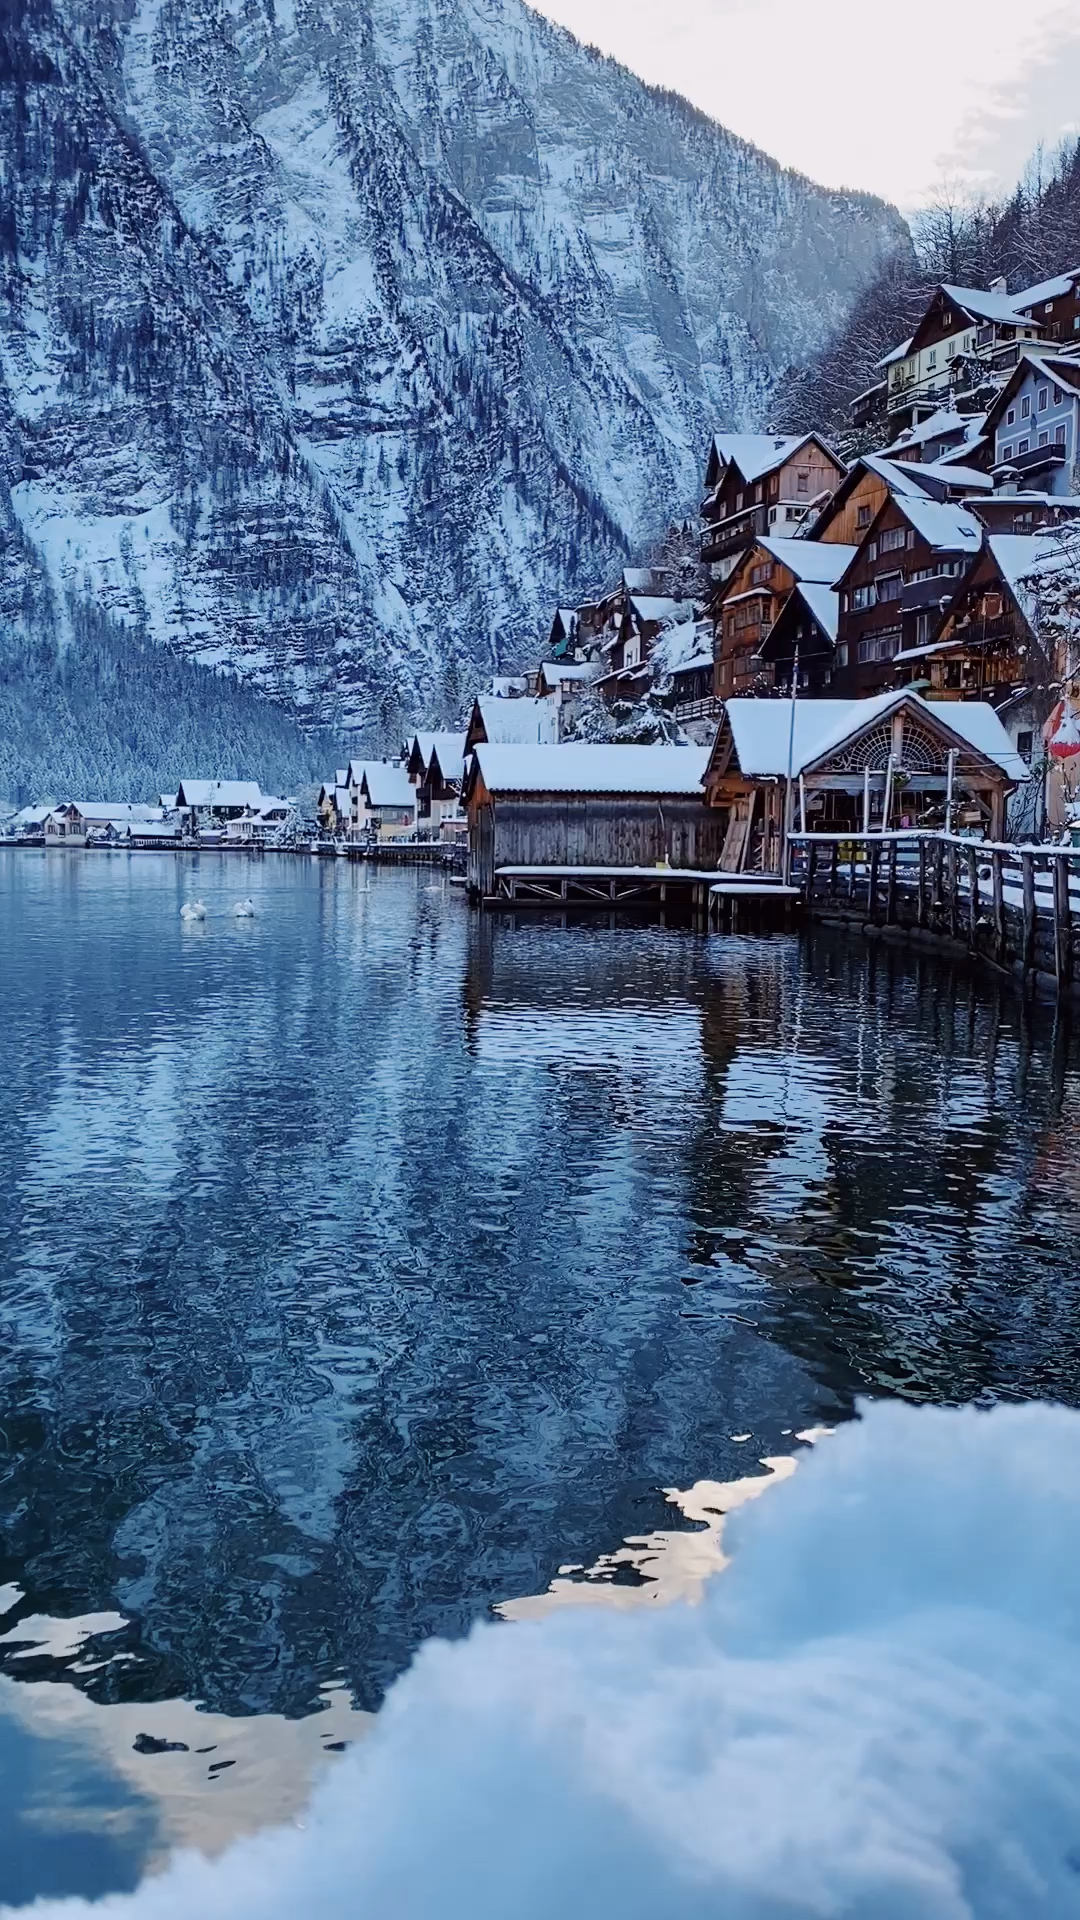 via @finduslost | Hallstatt, Austria is one of the most picturesque European towns I have ever been to. Stay overnight in this dream destination to avoid the crowds and take full advantage of its stunning scenery in the evenings and early morning. Hallstatt in winter is just as magical with the snow covered rooftops and mist over the mountains. #hallstatt #austria #europeantravel #bucketlisttravel #finduslost